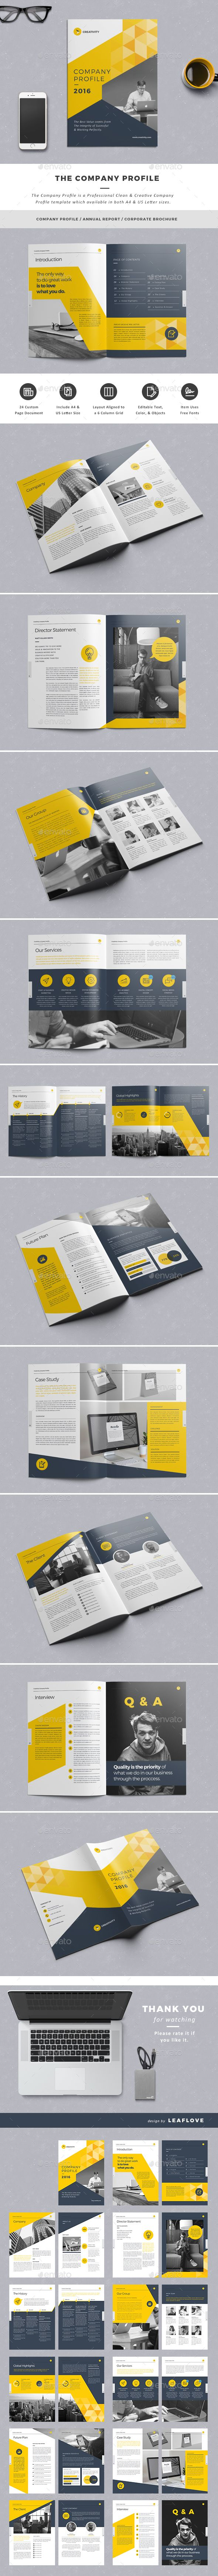 """Check out this @Behance project: """"The Company Profile"""" https://www.behance.net/gallery/33242449/The-Company-Profile"""